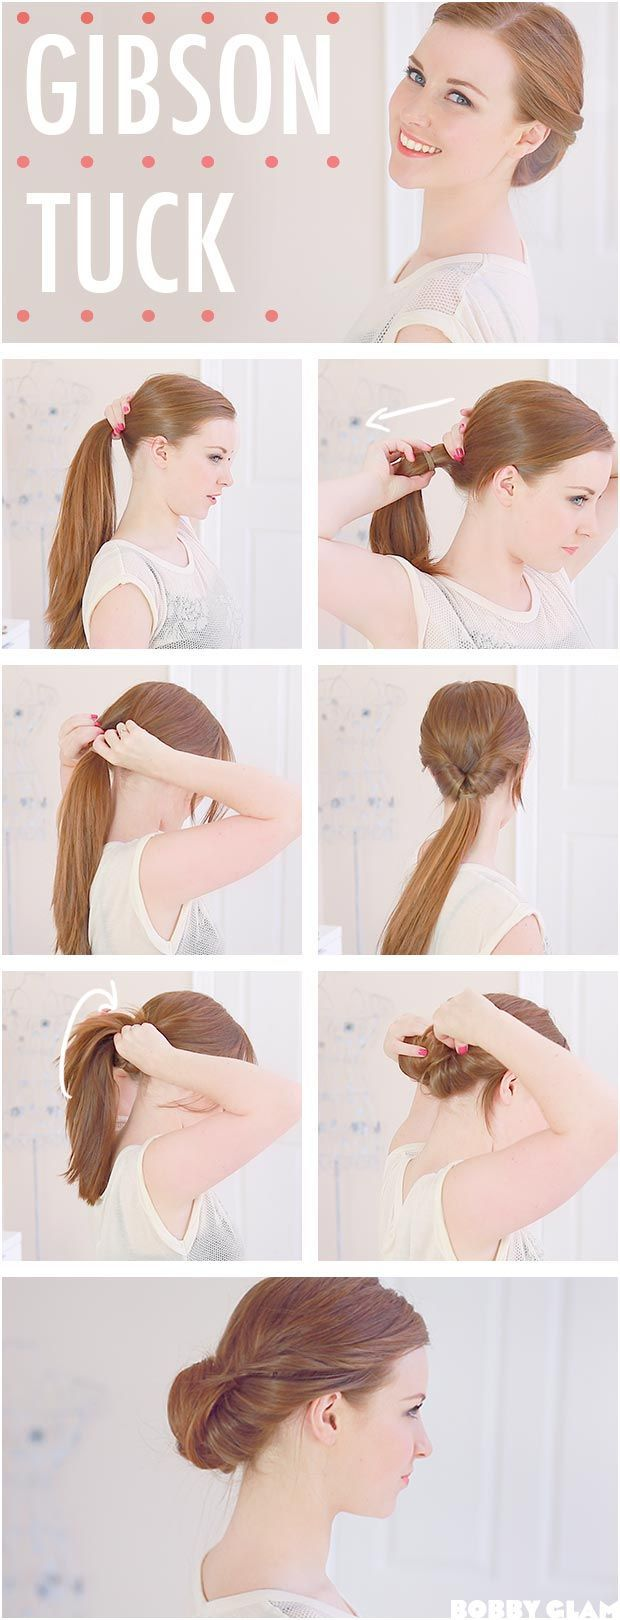 Gibson tuck hair tutorial- this is an easy hair ... | elfsacks